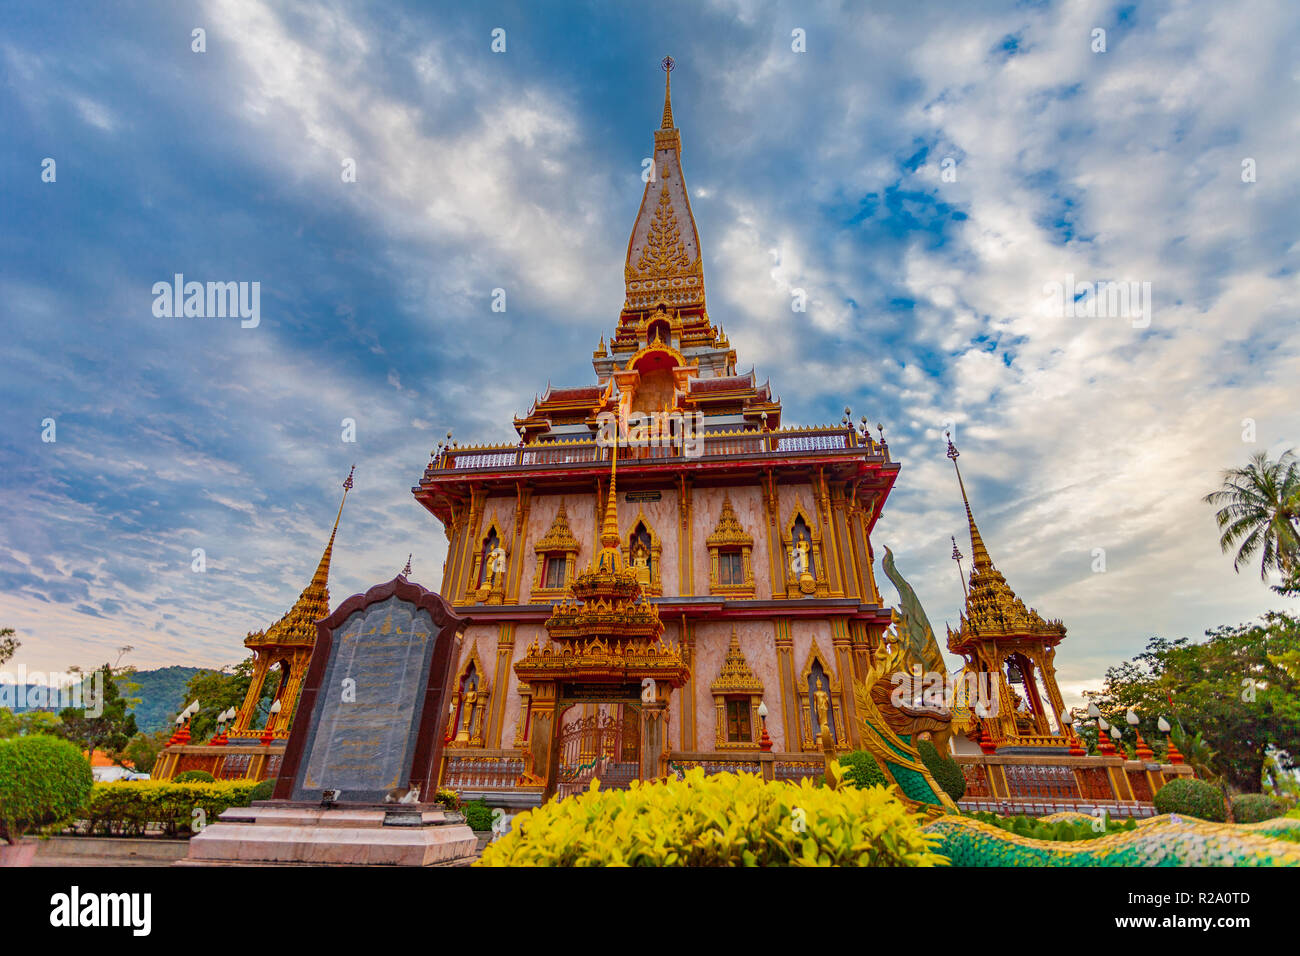 sunset on pagoda of Chalong temple.Wat Chalong is the largest and most revered in Phuket. all tourists like to visit Chalong temple.The beautiful temp - Stock Image